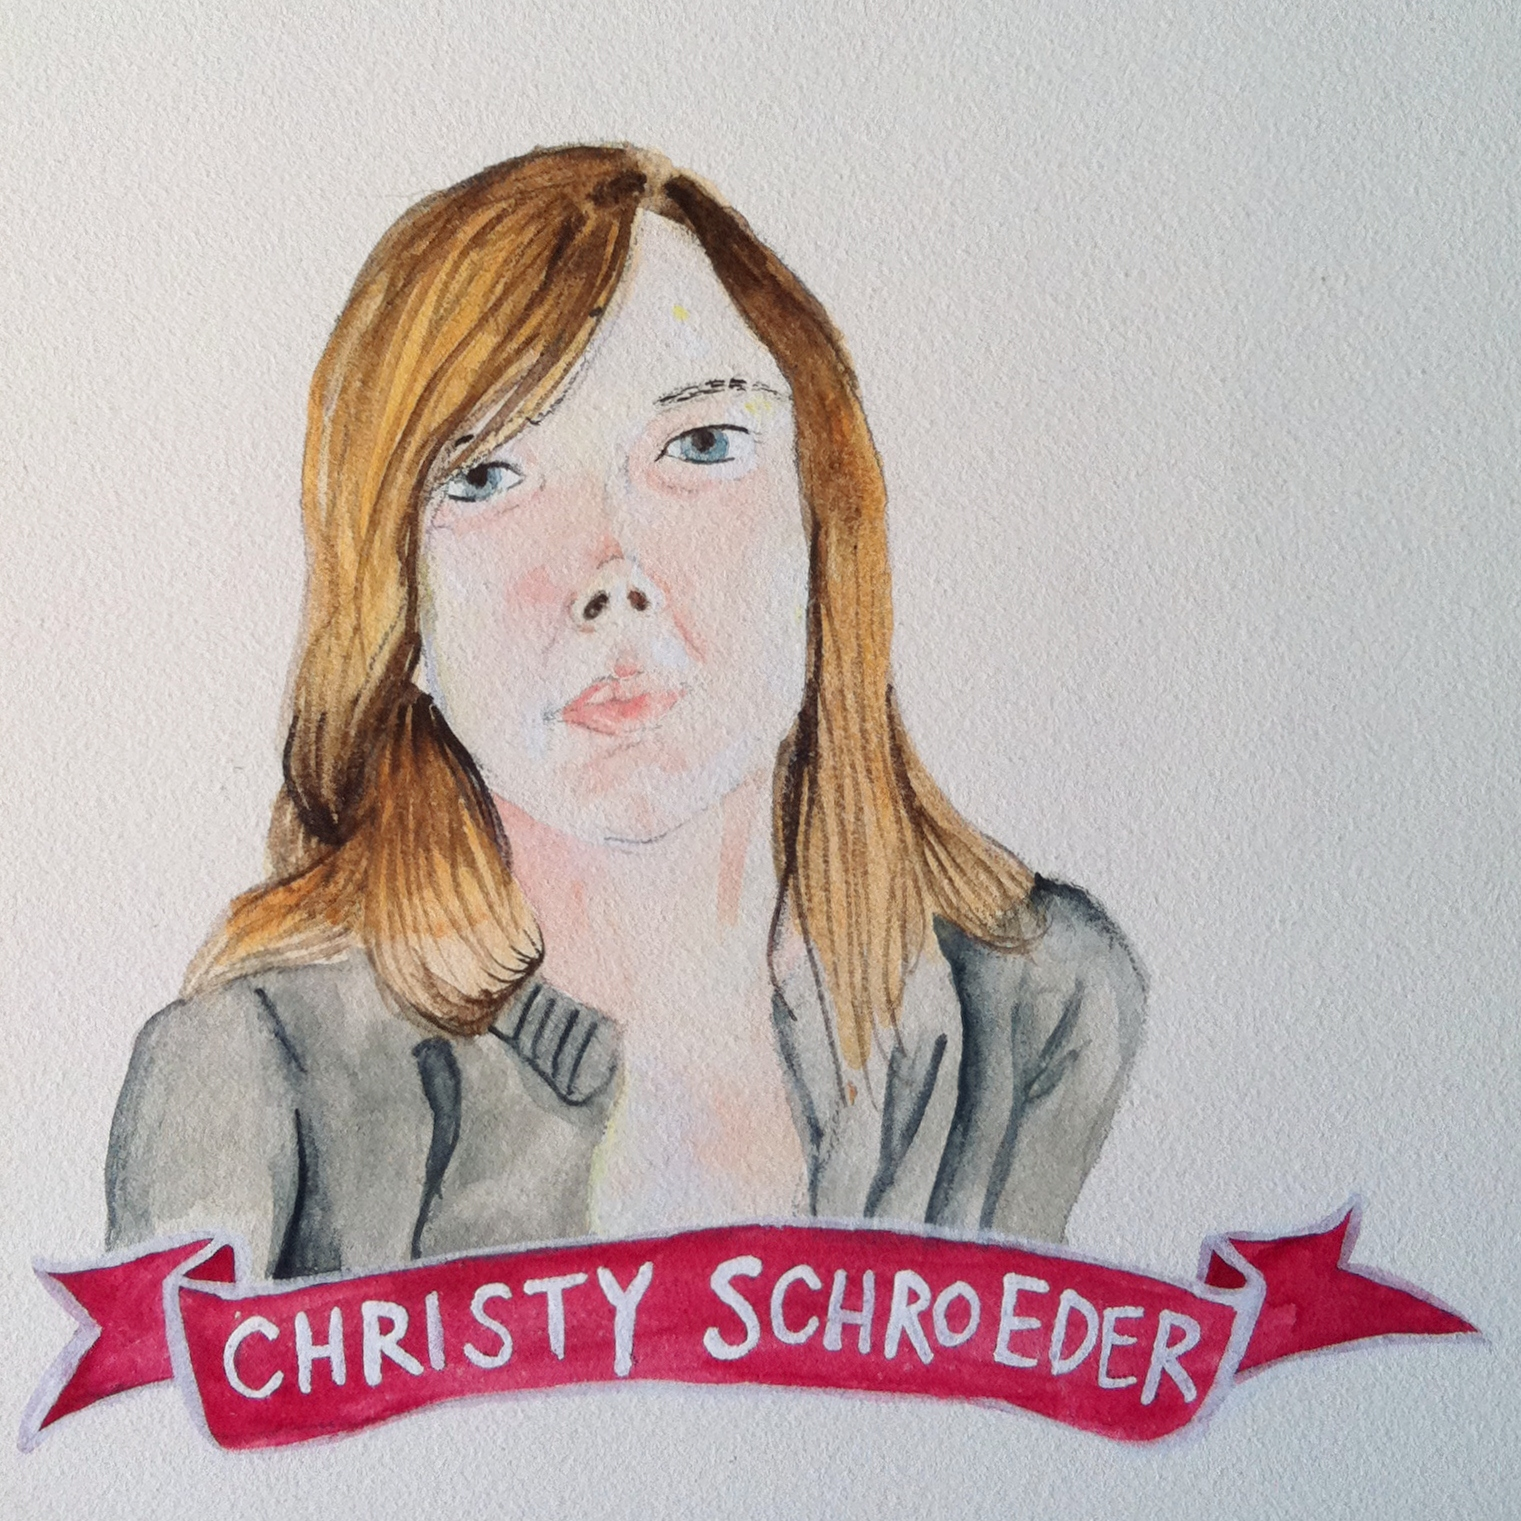 Talent Loves Company at Barbara Archer Gallery: 365 portraits by Lydia Walls - Christy Schroeder